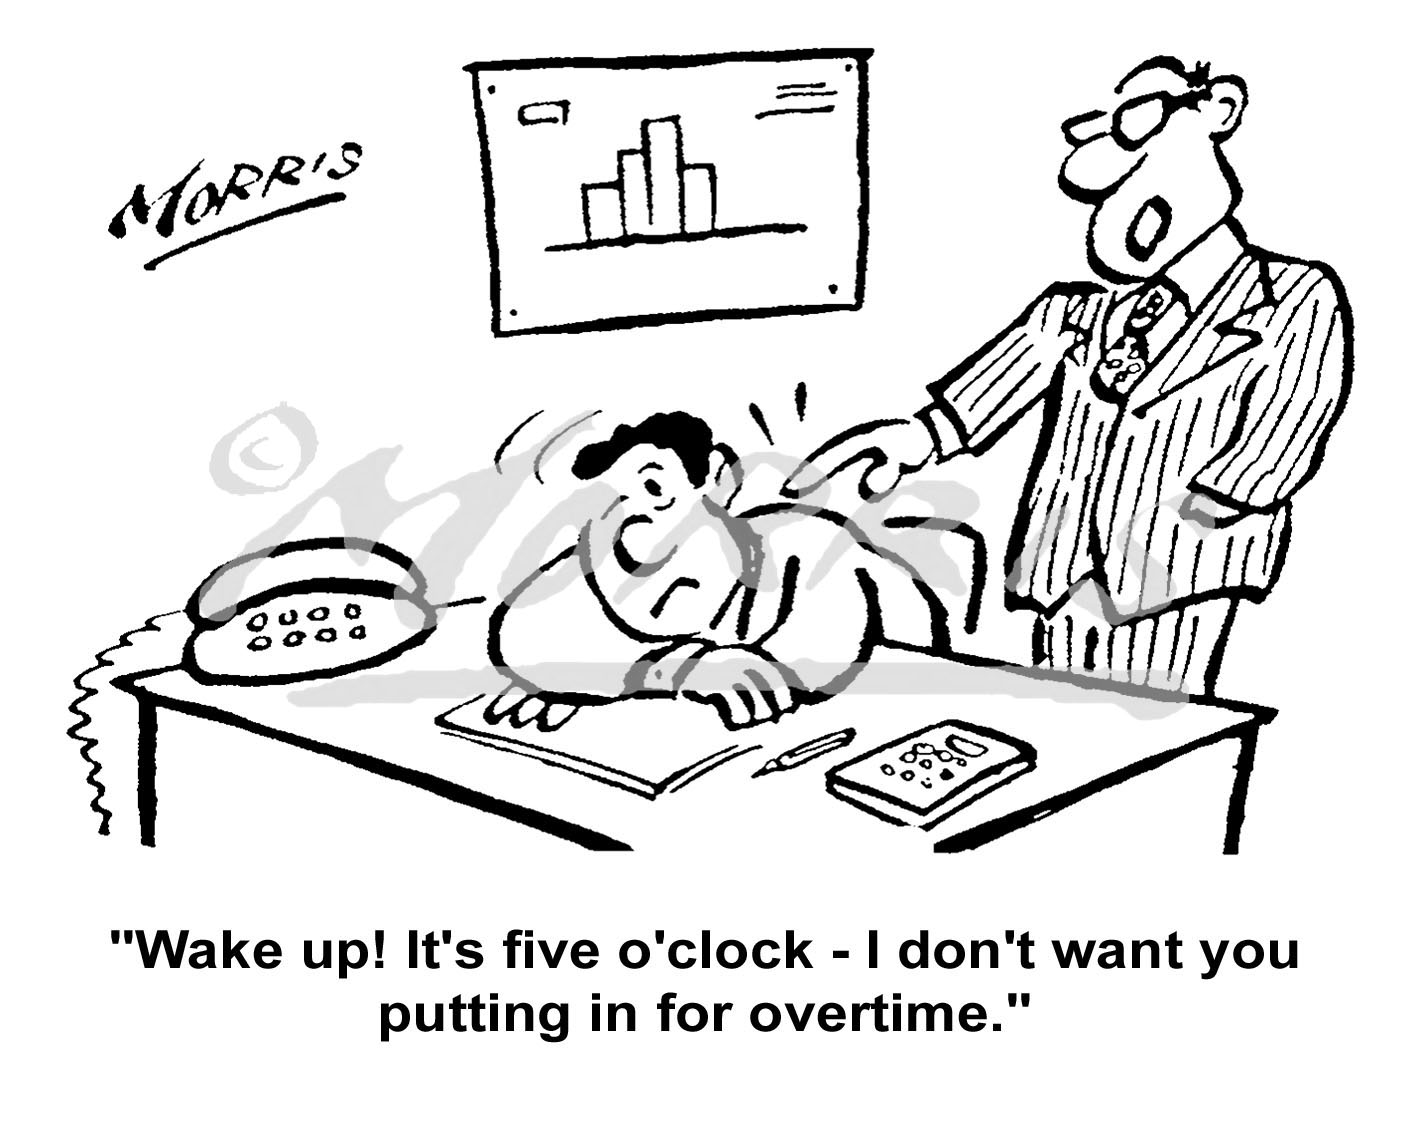 Manager office overtime cartoon – Ref: 5067bw